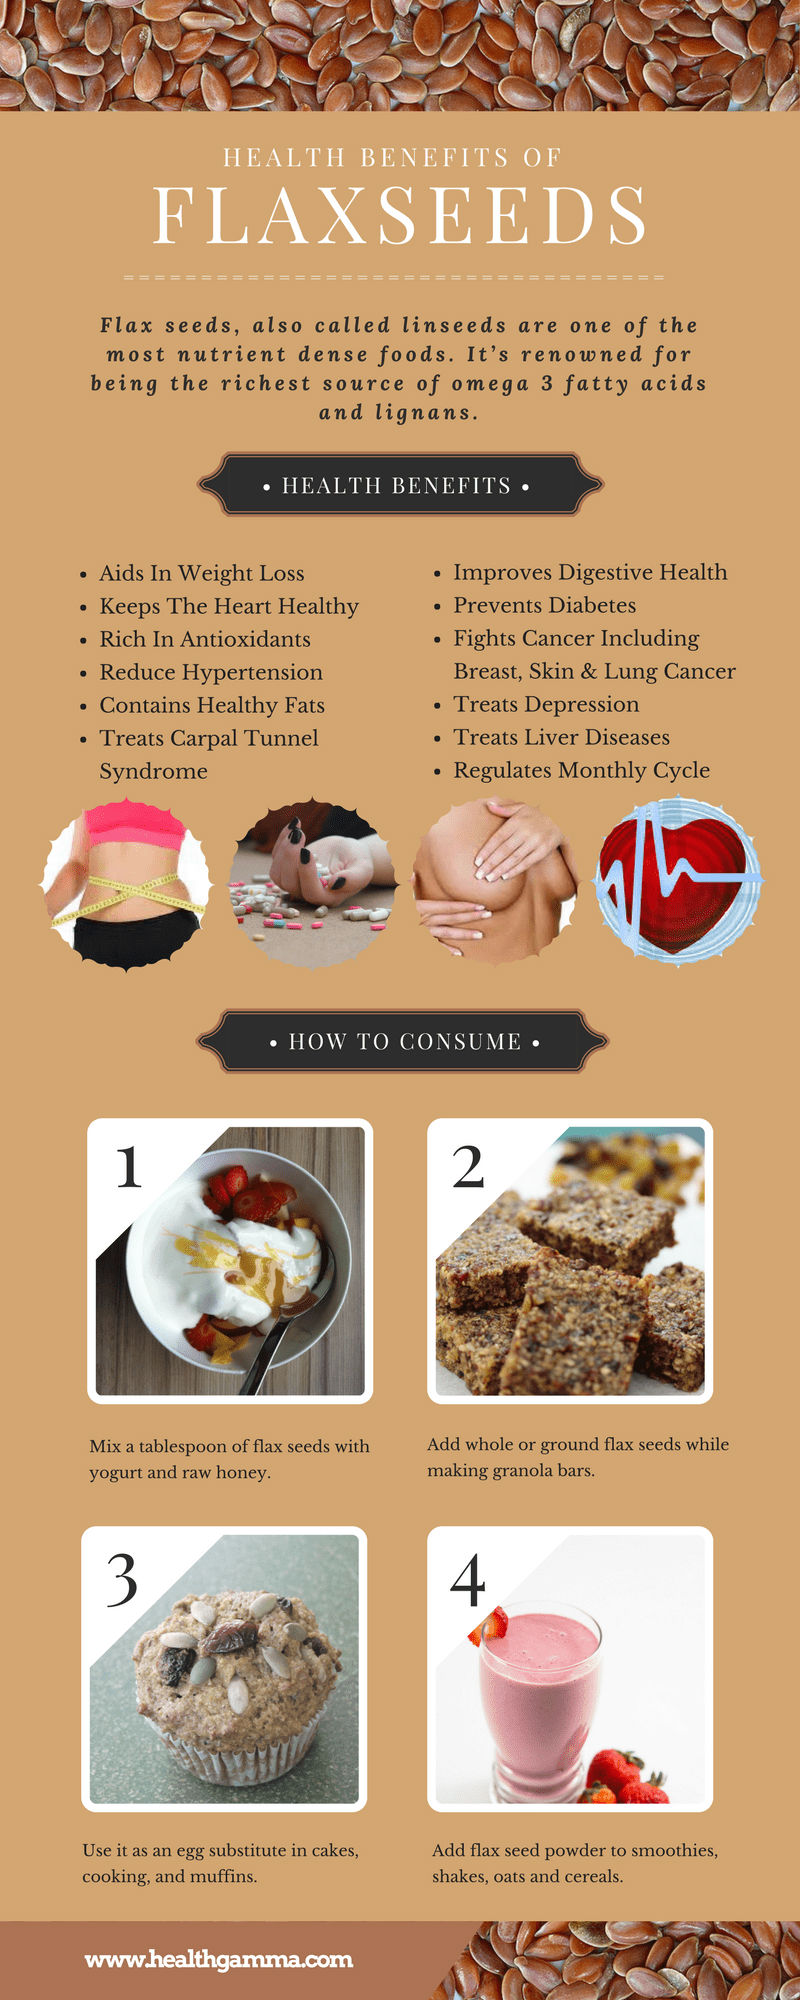 Health Benefits of Flaxseeds [Infographic]